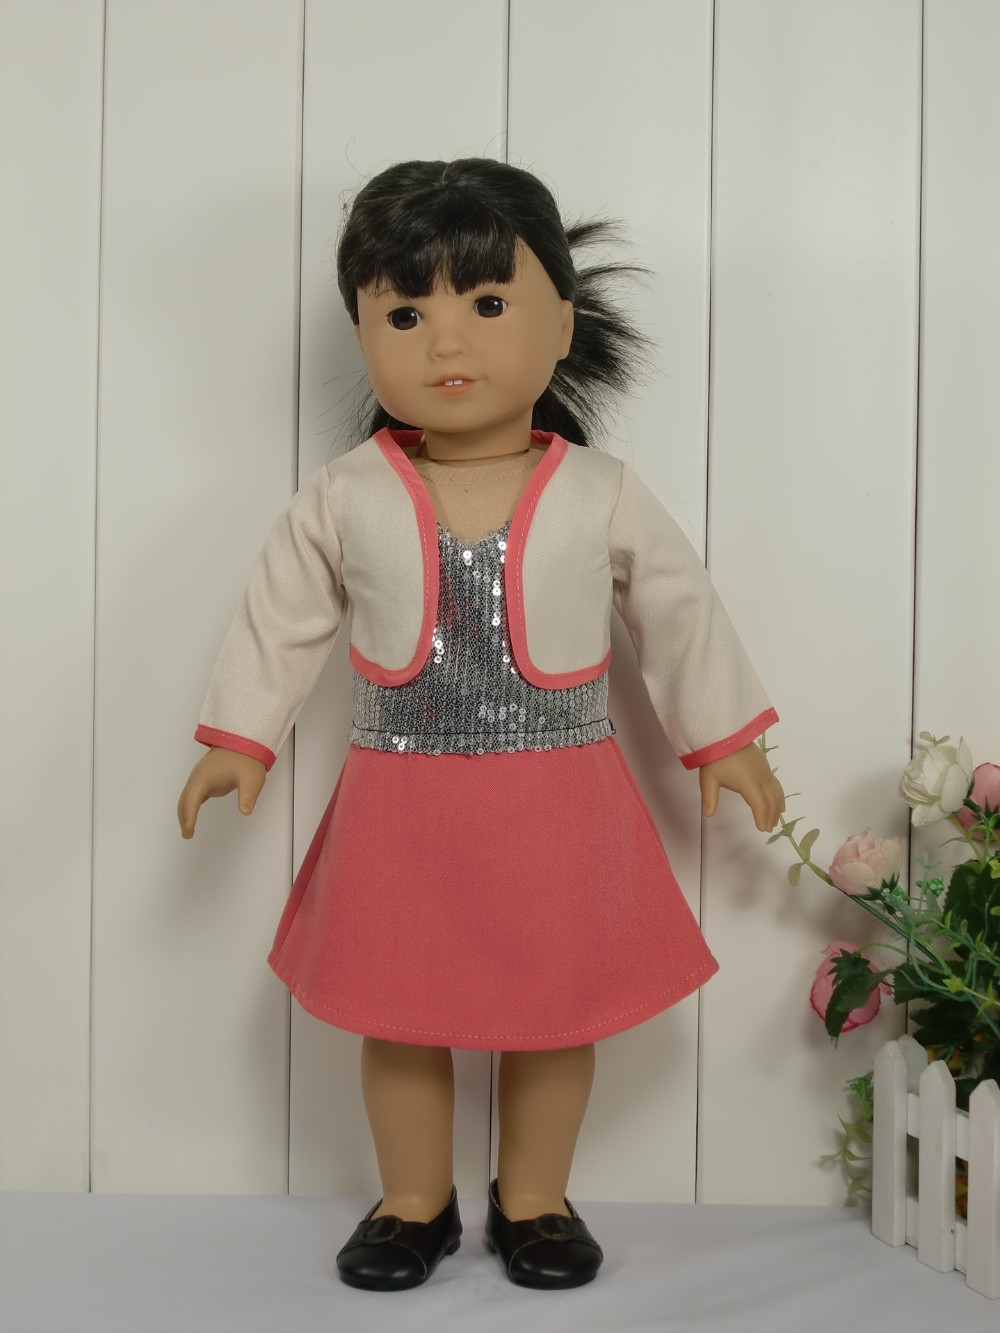 18 Inch Doll Clothing/Clothes 3 pcs A Set Fits American Girl Dolls and Other 18 inch Girl Dolls ...